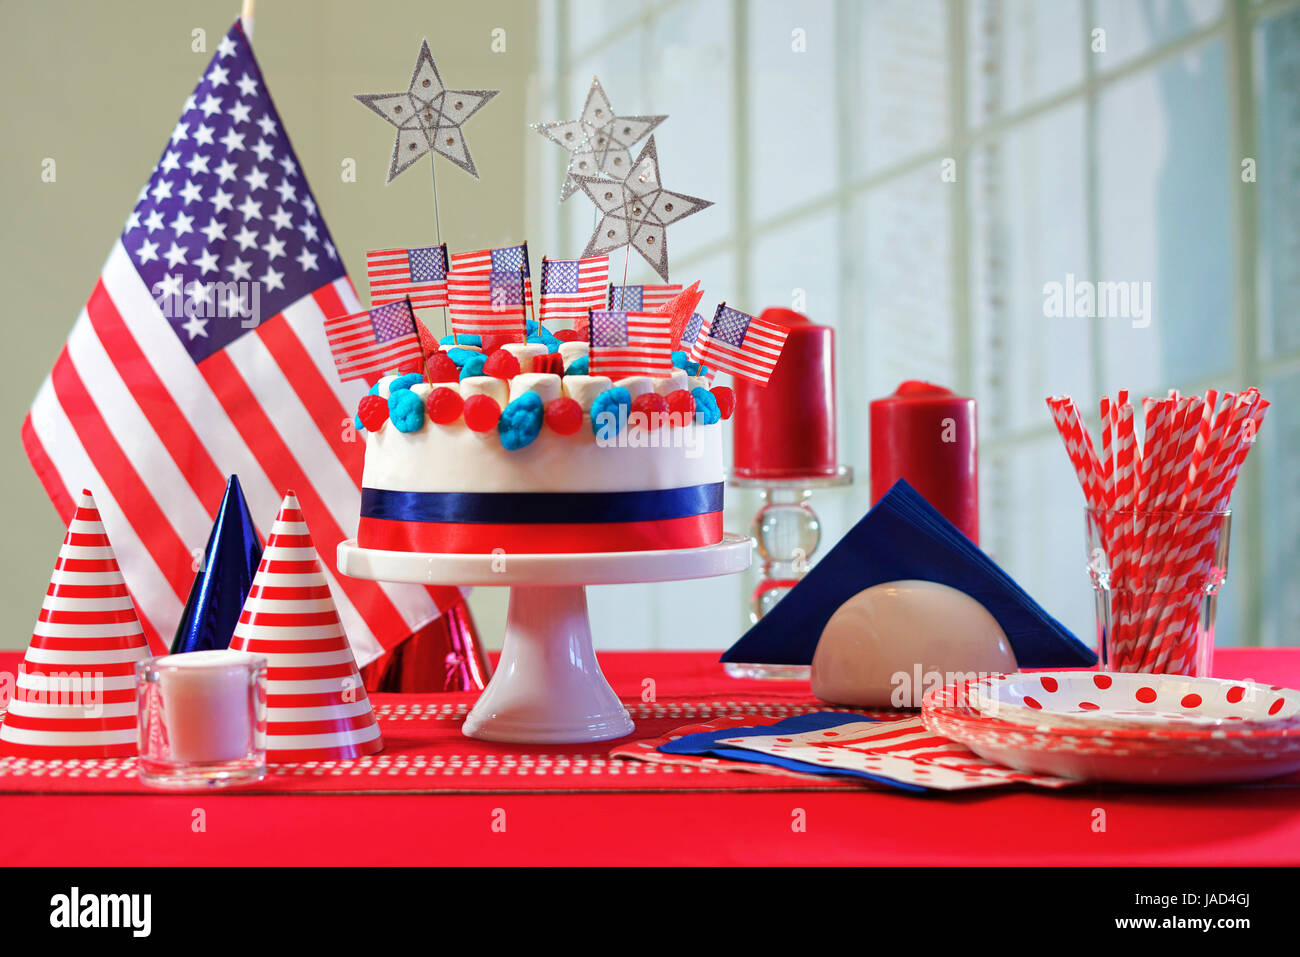 USA National holiday celebration party table with showstopper cake and flags. - Stock Image